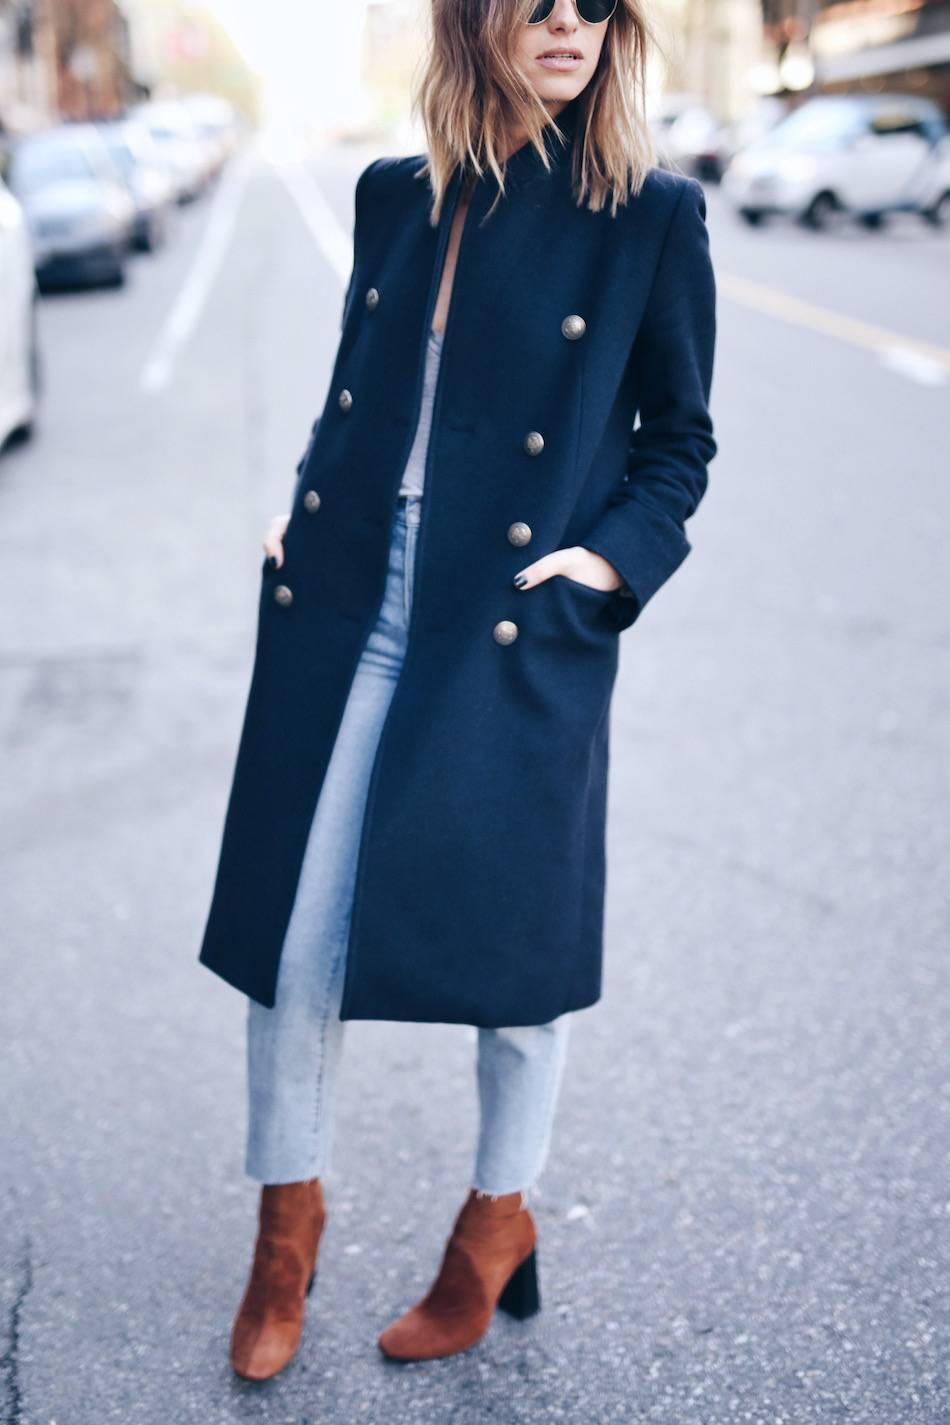 brown suede boots, navy coat